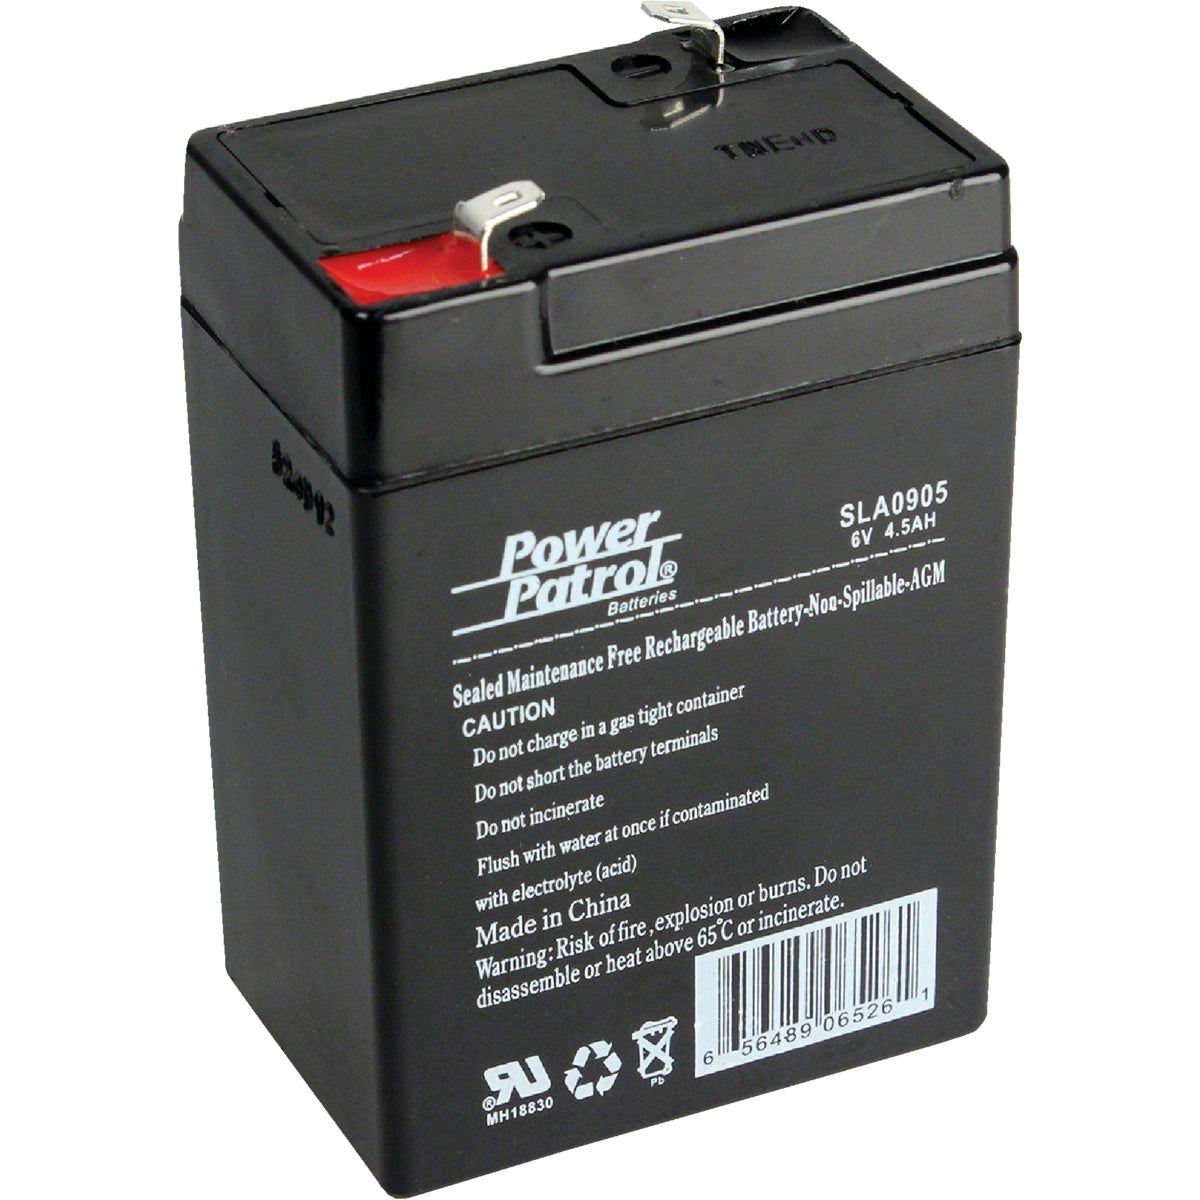 SLA 6V 4AMP BATTERY - SEC0905 by Interstate All Batty